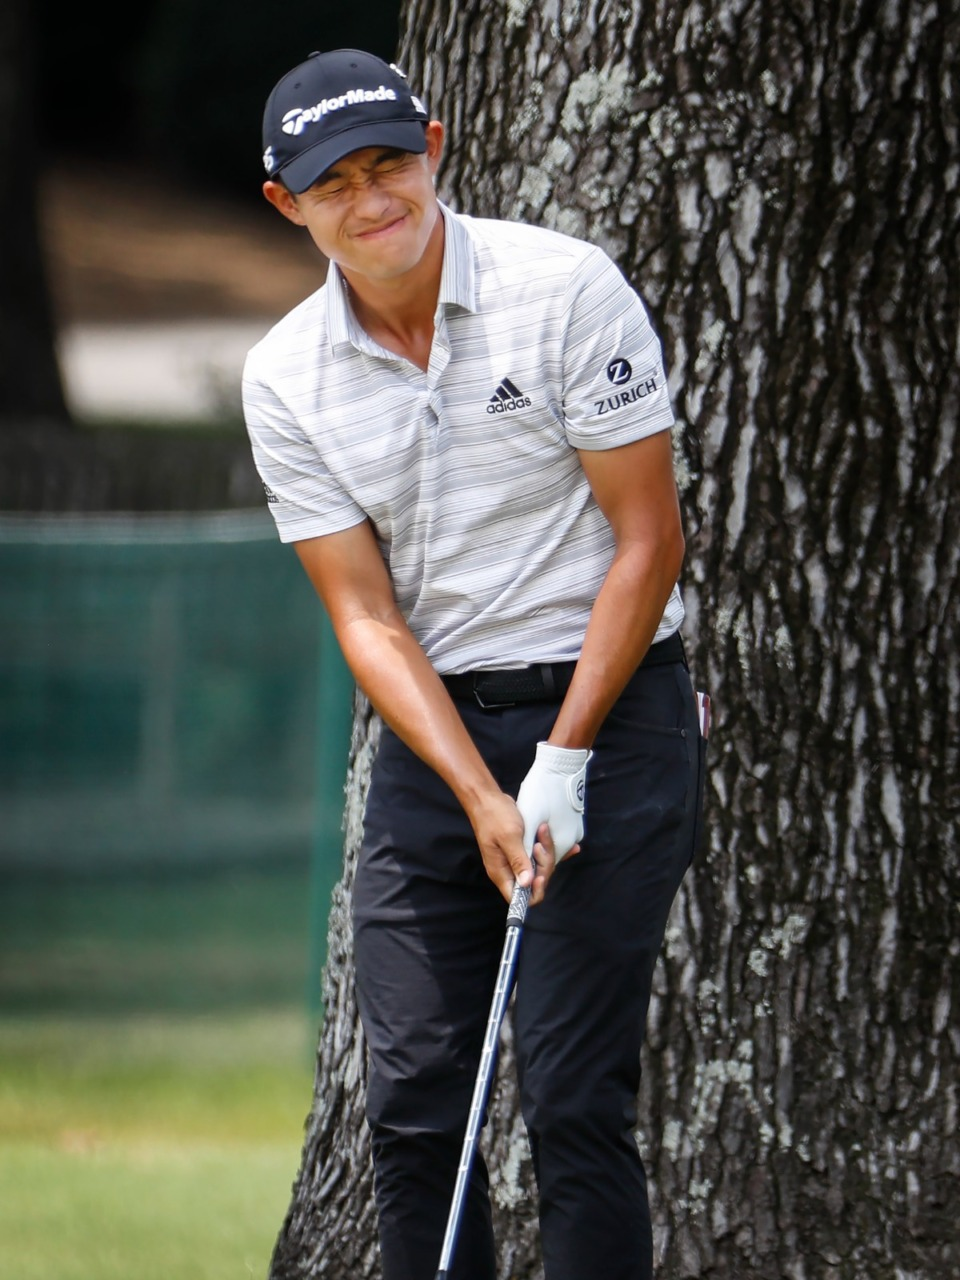 <strong>PGA golfer Collin Morikawa reacts after hitting his chip shot onto the 10th hole green&nbsp;during the first round of the WGC-FedEx St. Jude Invitational on Thursday, Aug. 5, 2021, at TPC Southwind.</strong> (Mark Weber/The Daily Memphian)